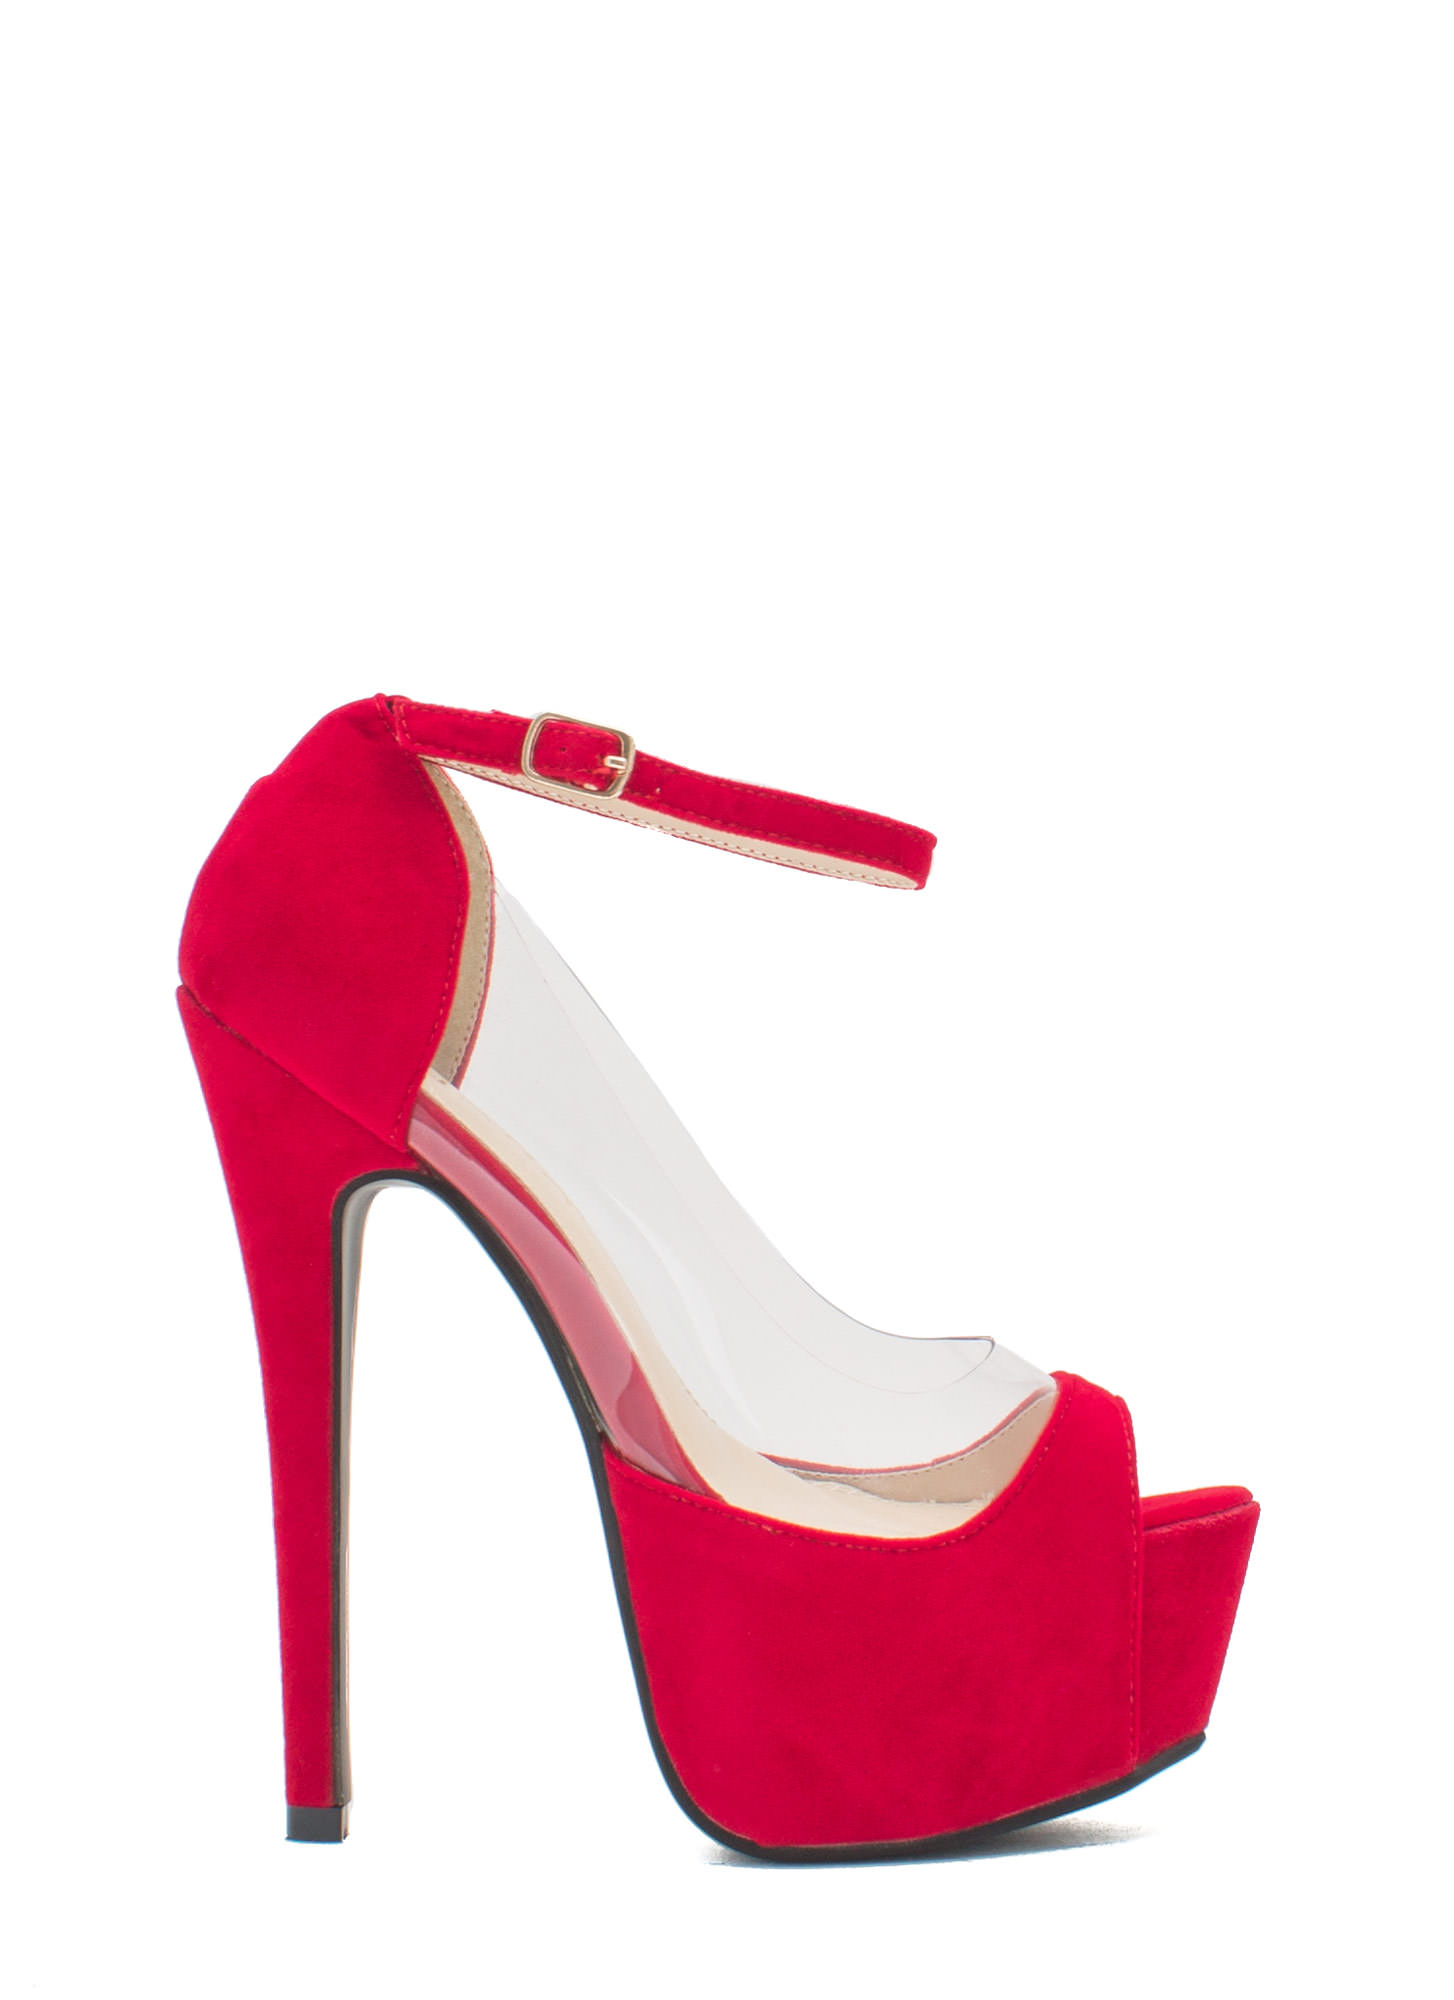 Power Move Velvet Platform Heels RED